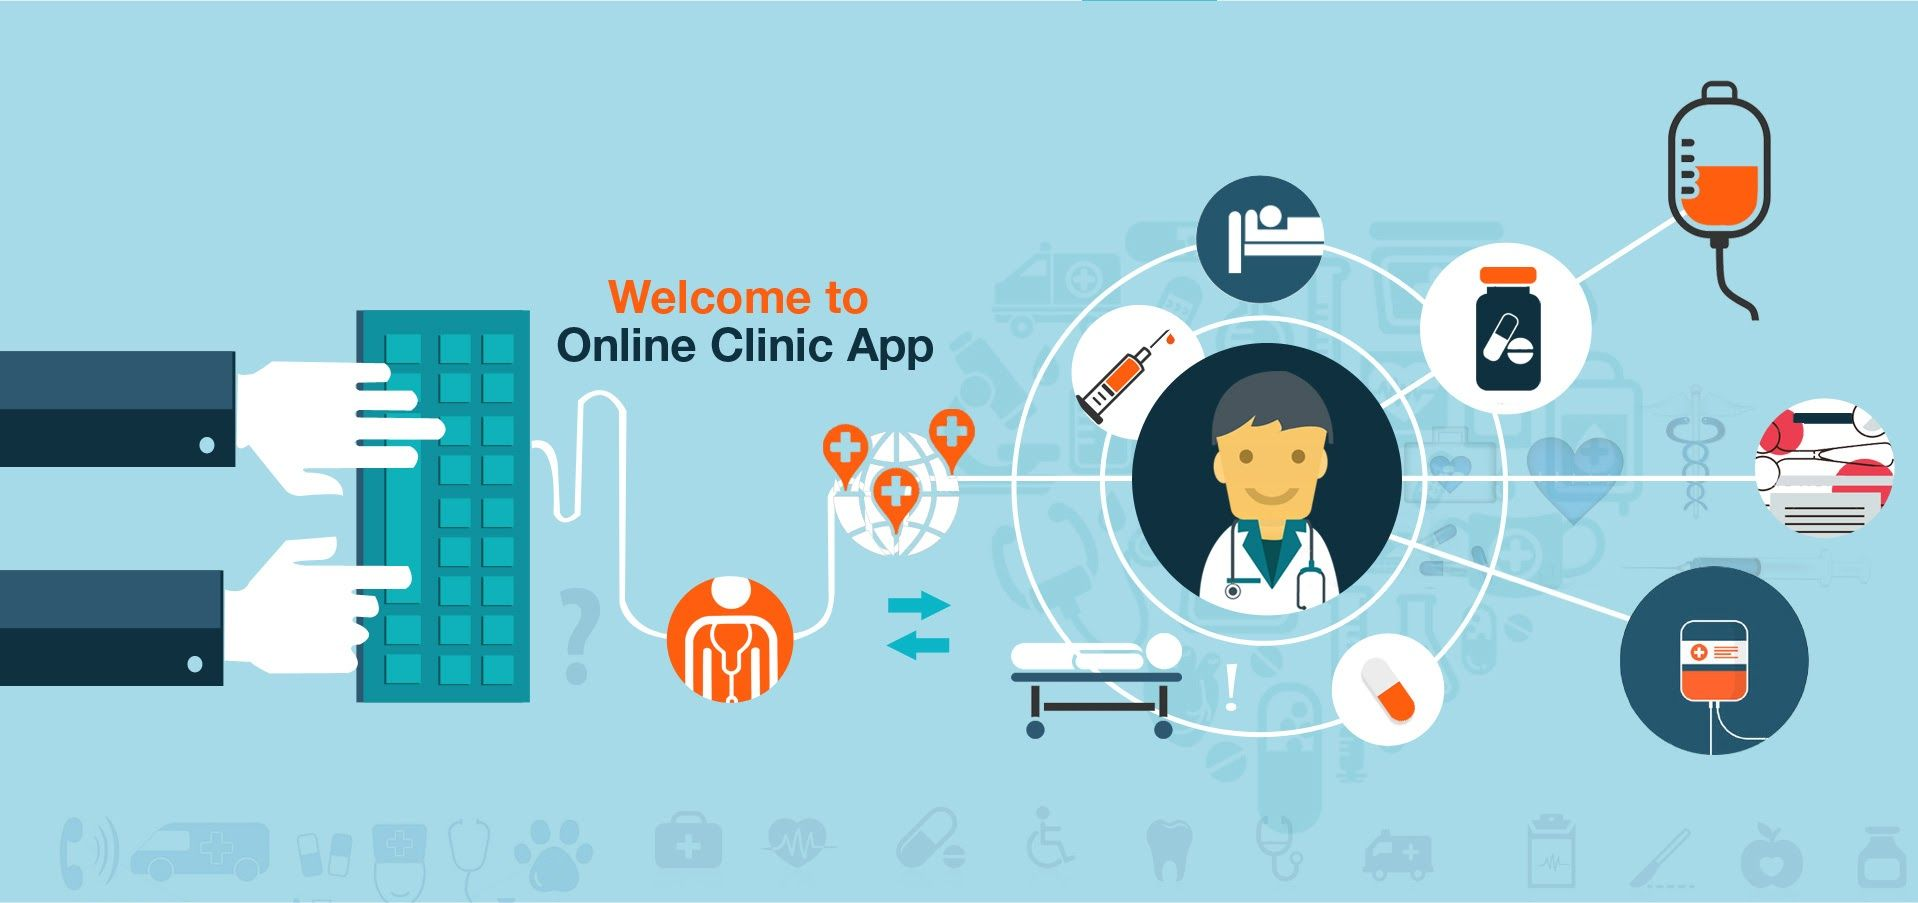 Online Clinic Reservation has web application which